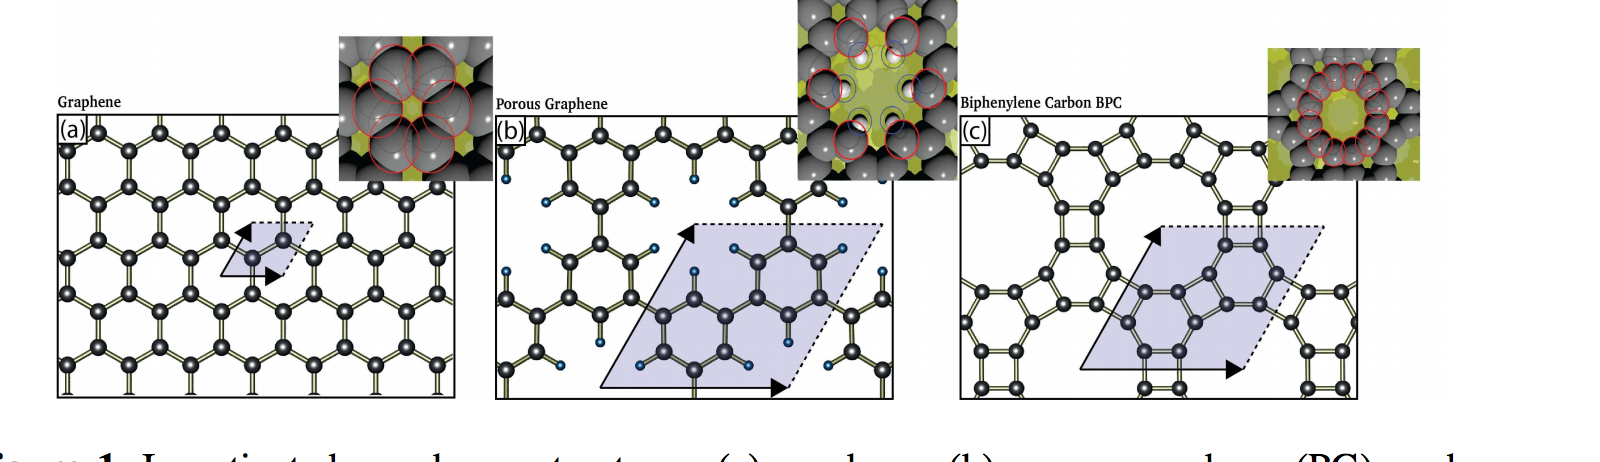 Graphene-like Membranes: From Impermeable to Selective Sieves